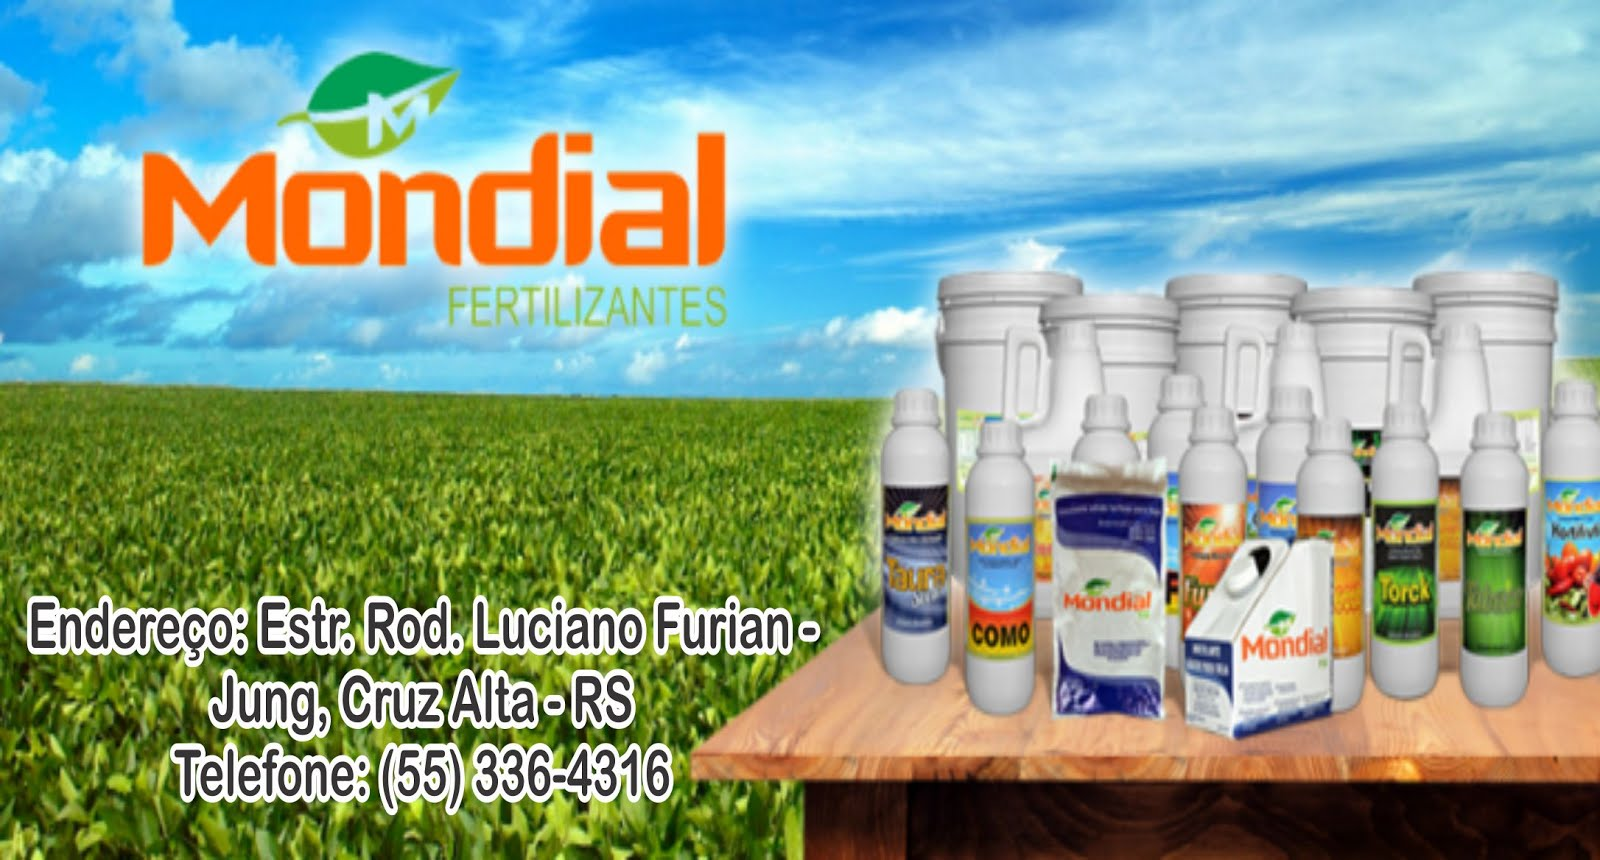 DISTRIBUIDOR DE FERTILIZANTES